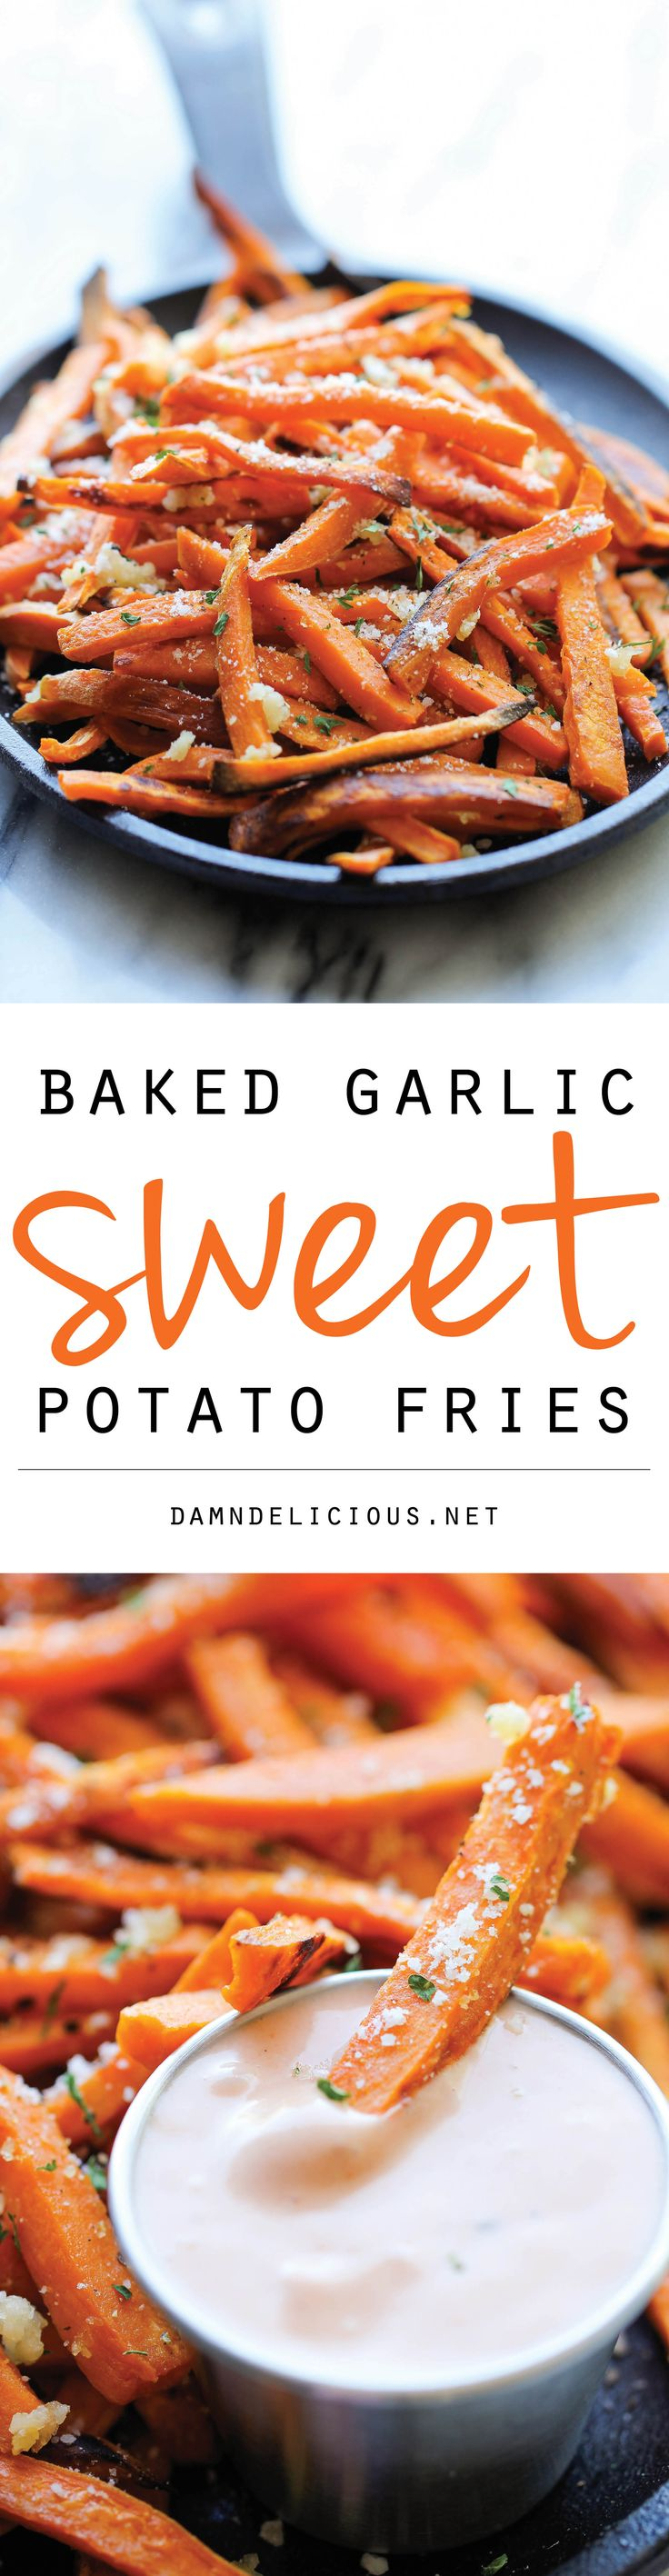 Baked Garlic Sweet Potato Frie: amazingly crisp on the outside and tender on the inside, and so much better than the fried version.